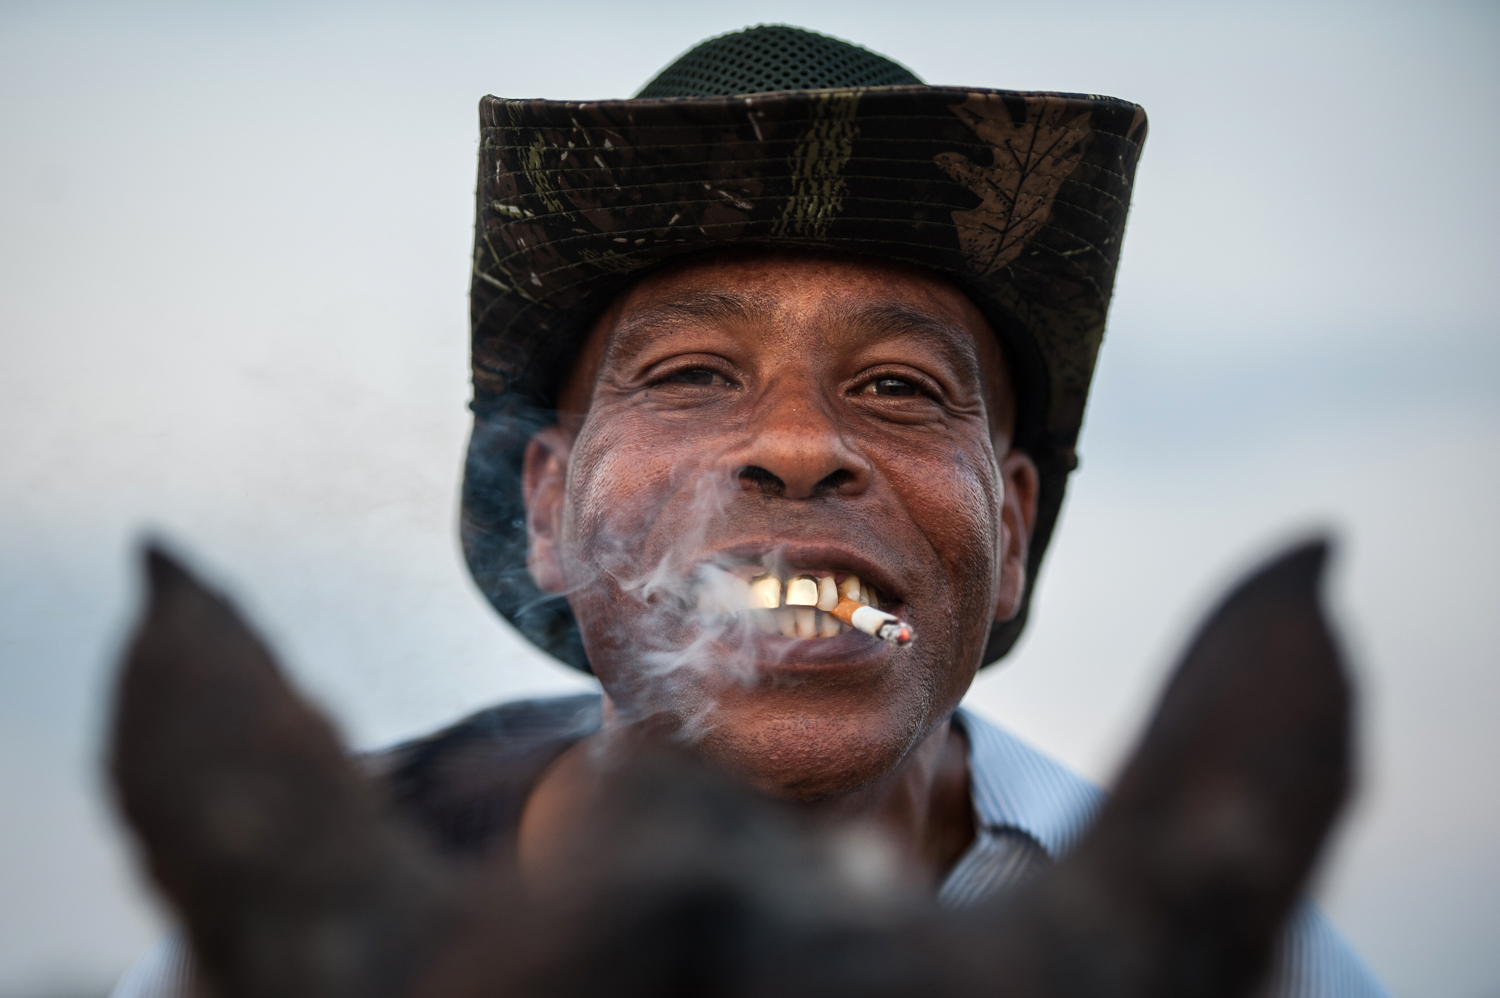 A cowboy named James poses for a portrait in Bolivar County, Mississippi.